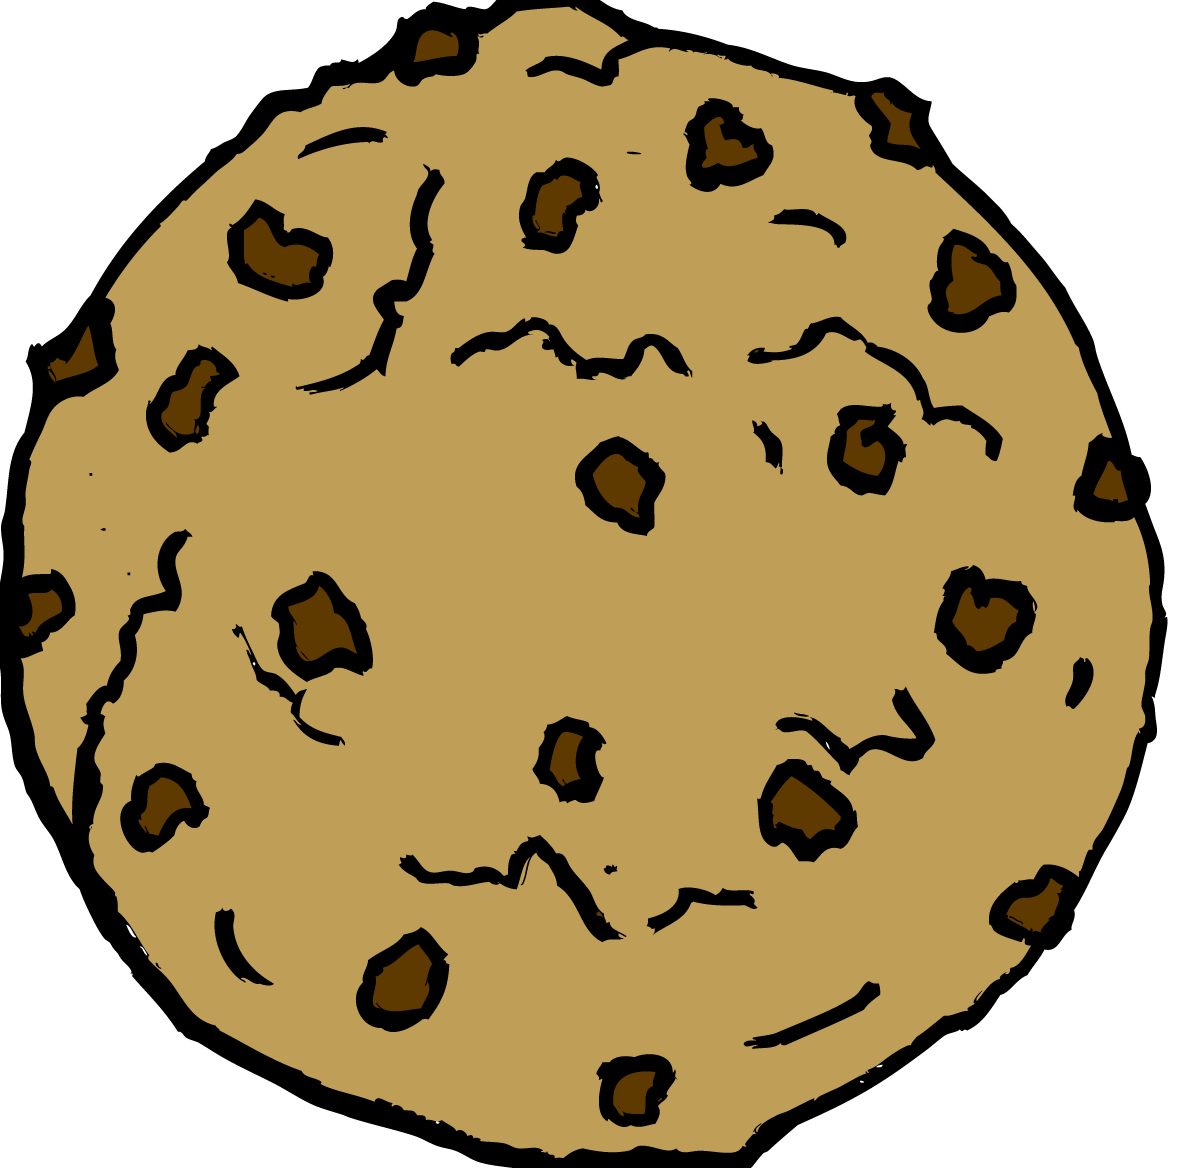 Chocolate Chip Cookie Clipart 2-Chocolate chip cookie clipart 2-5